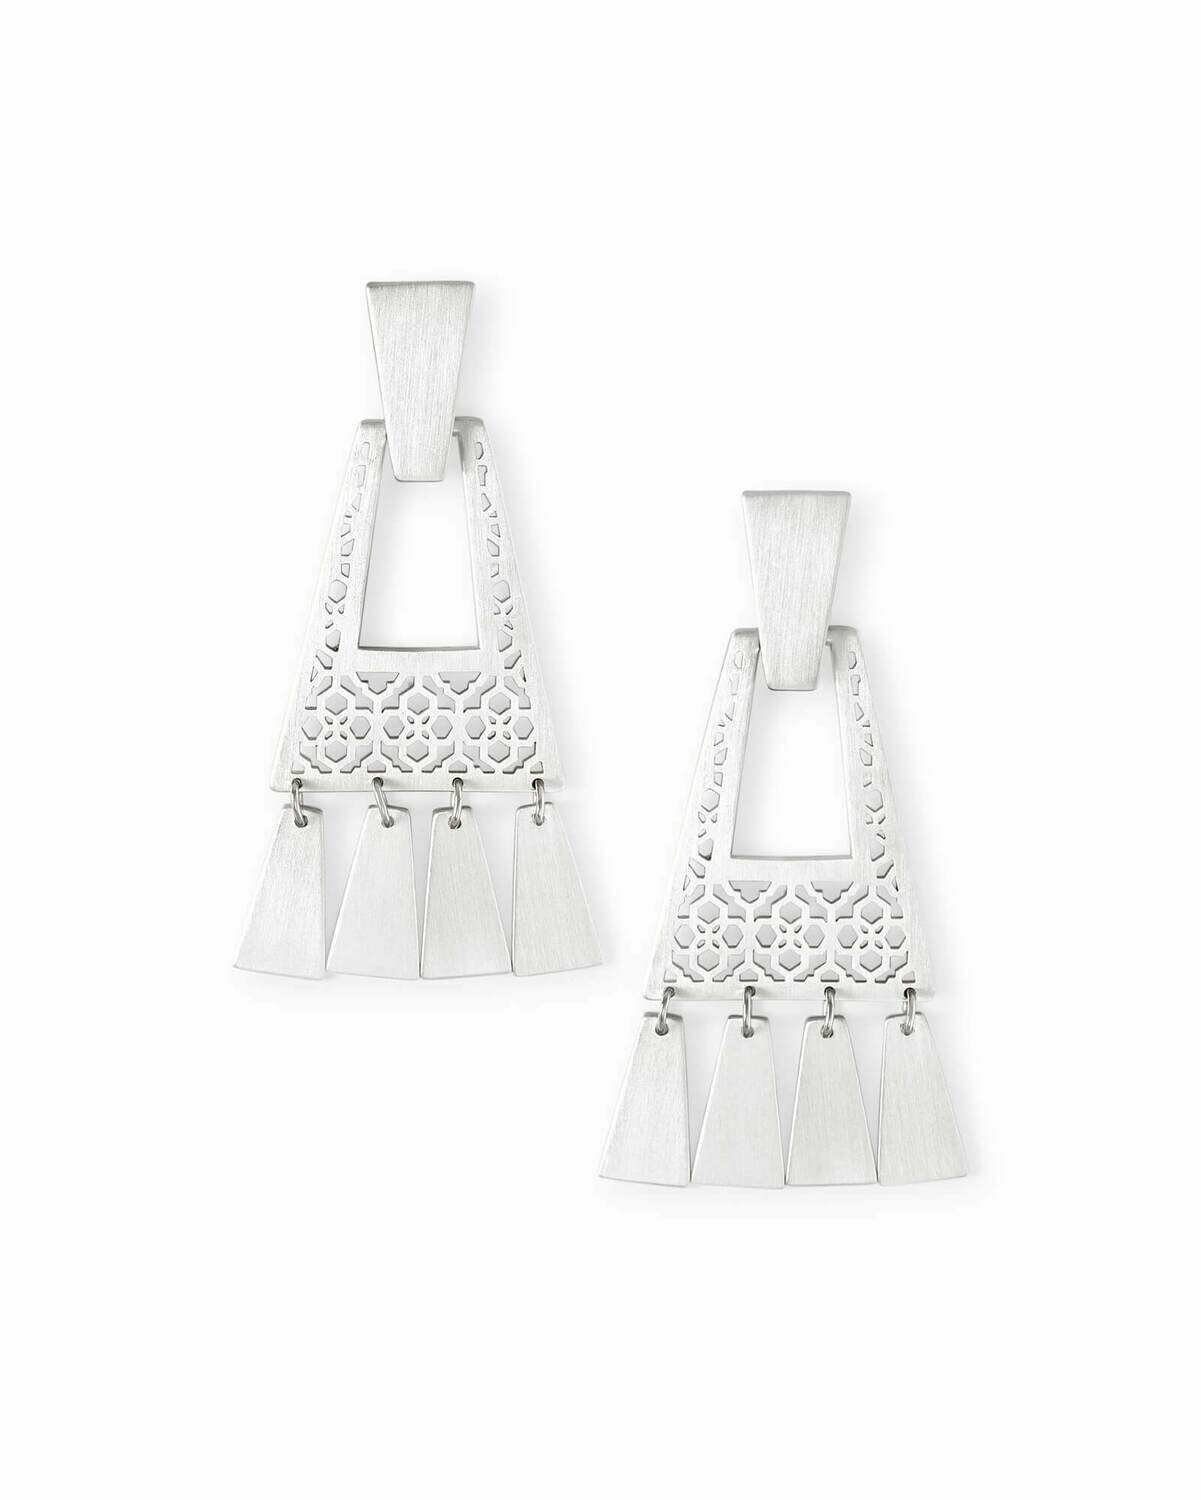 Kendra Scott Kase Bright Silver Fringe Earrings in Bright Silver Filigree